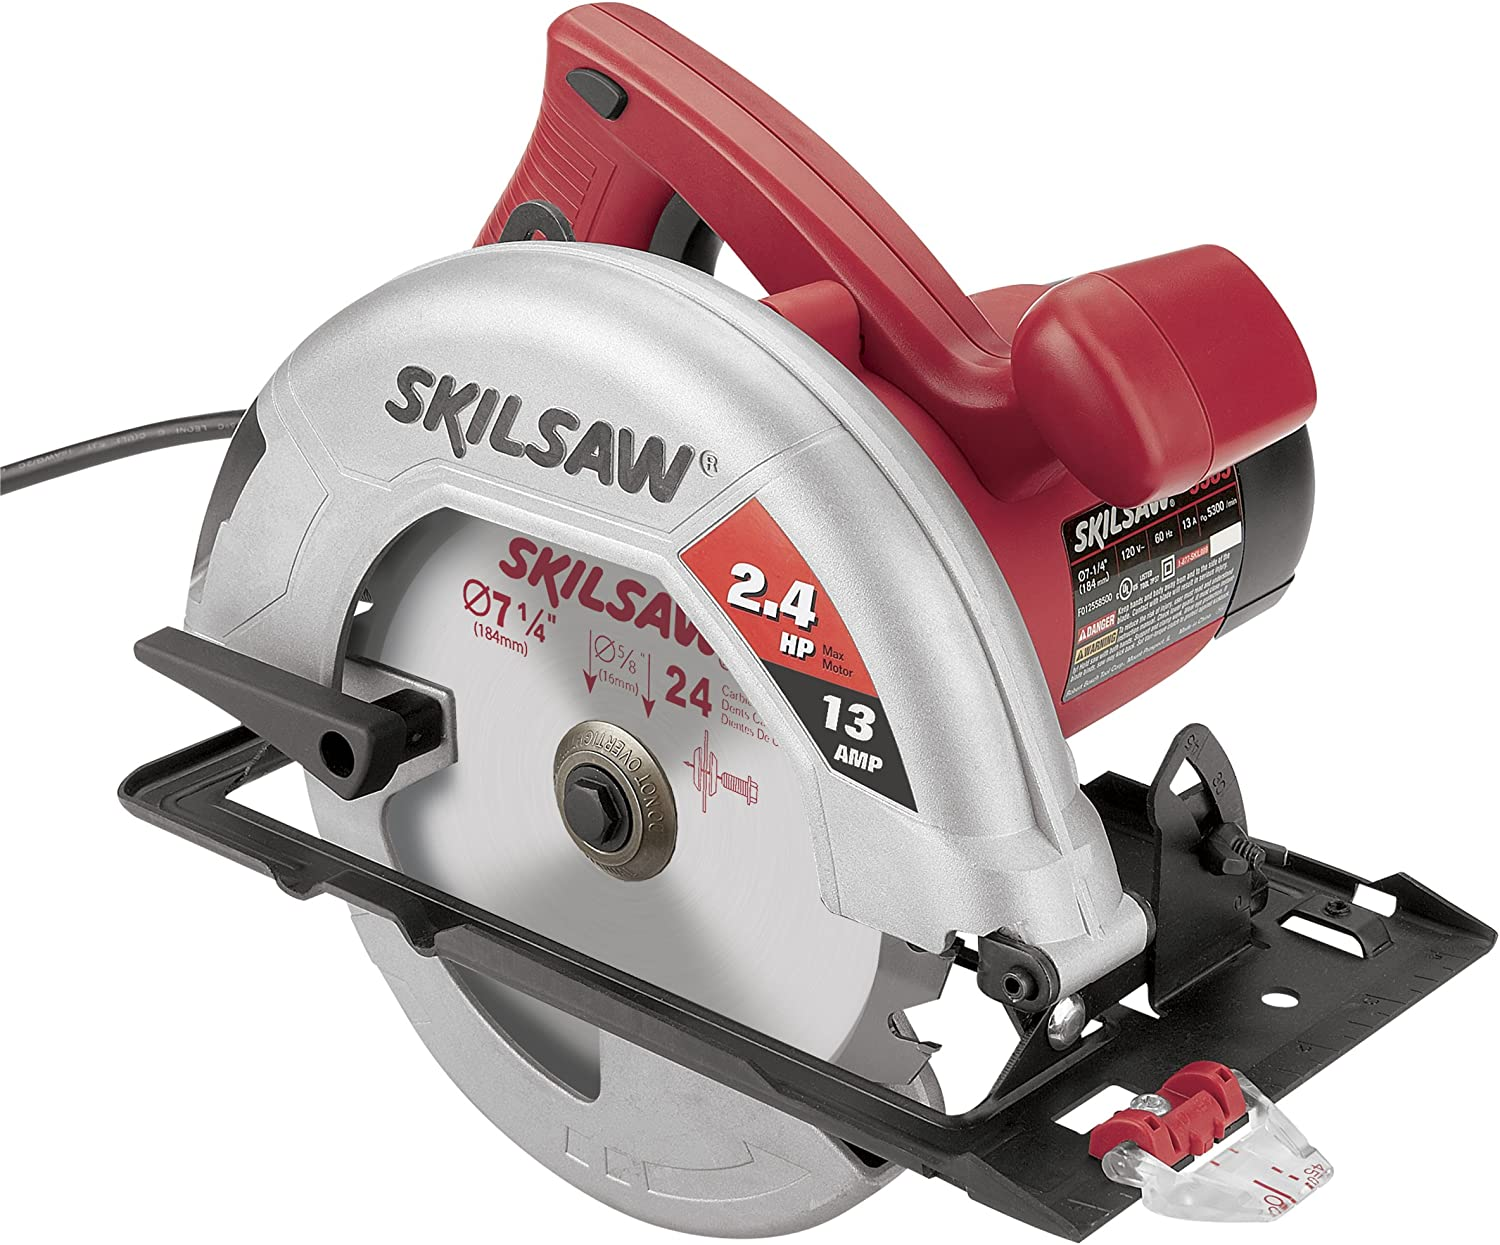 Factory-Reconditioned SKIL 5580-01-RT 7-1 4-Inch Circular Saw with Bag